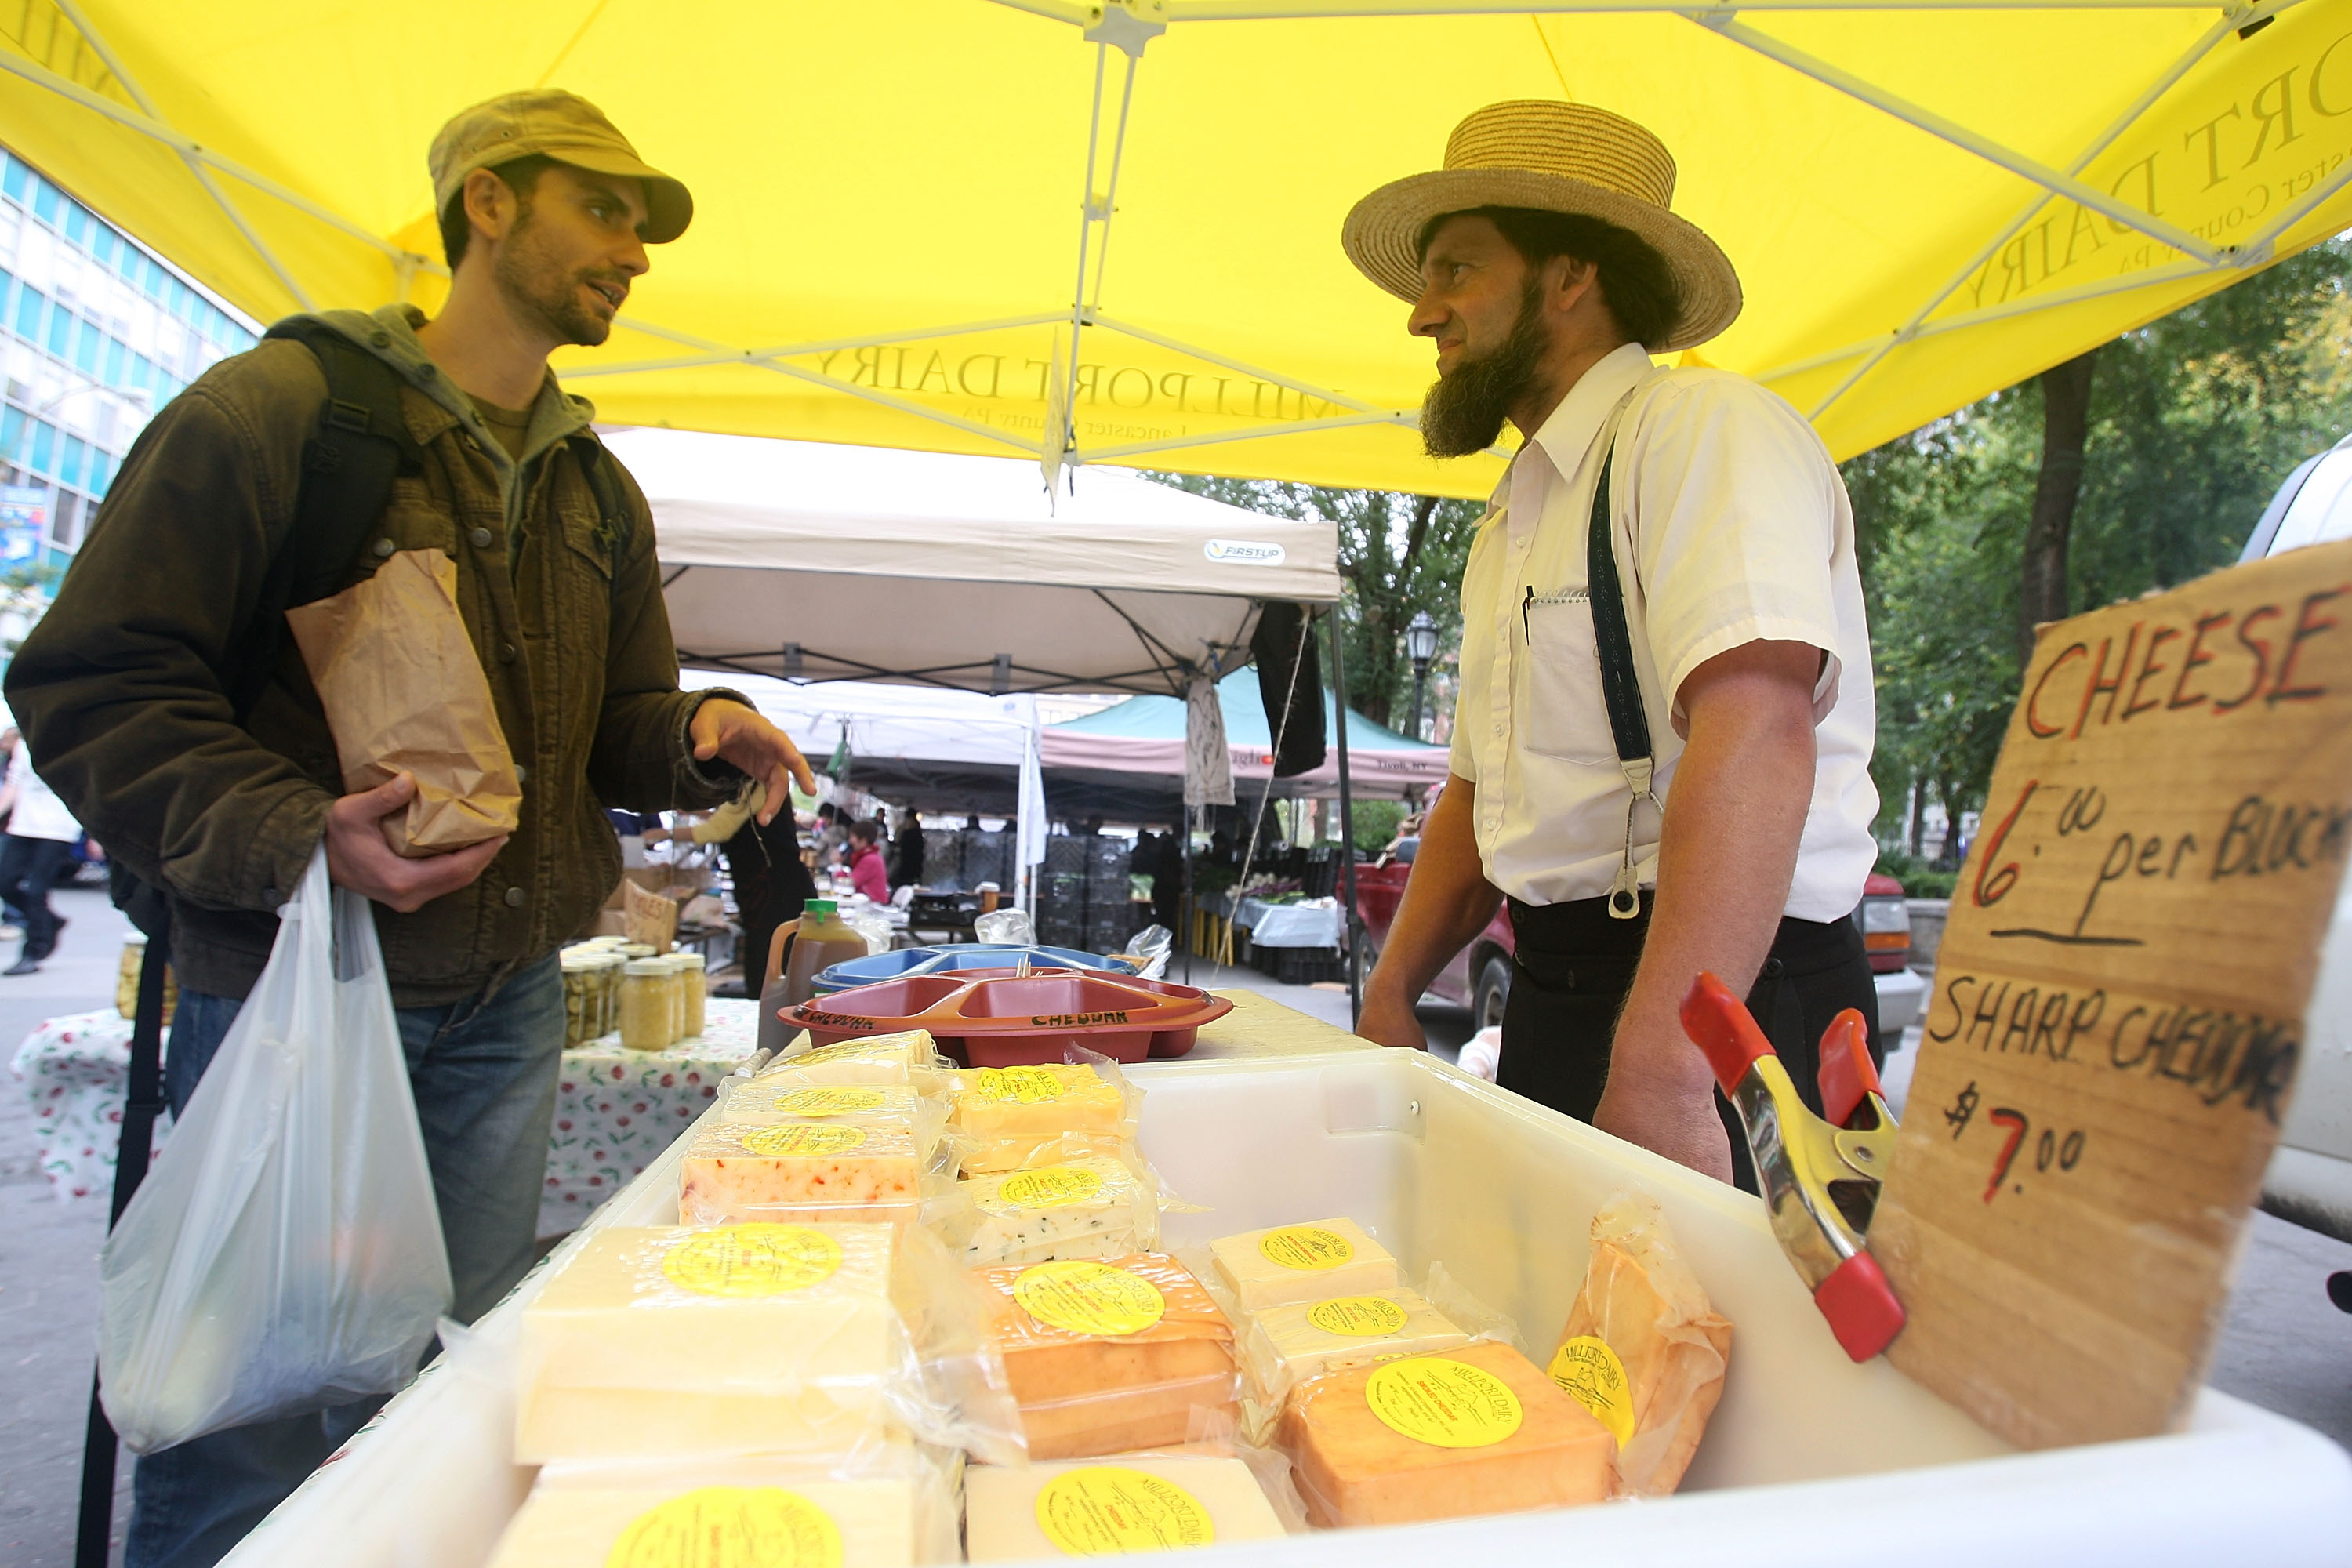 NEW YORK - OCTOBER 02: Amish farmer John Stoltzfoos (R) talks with a customer at the Union Square farmers market October 2, 2009 in New York City. (Photo by Mario Tama/Getty Images)